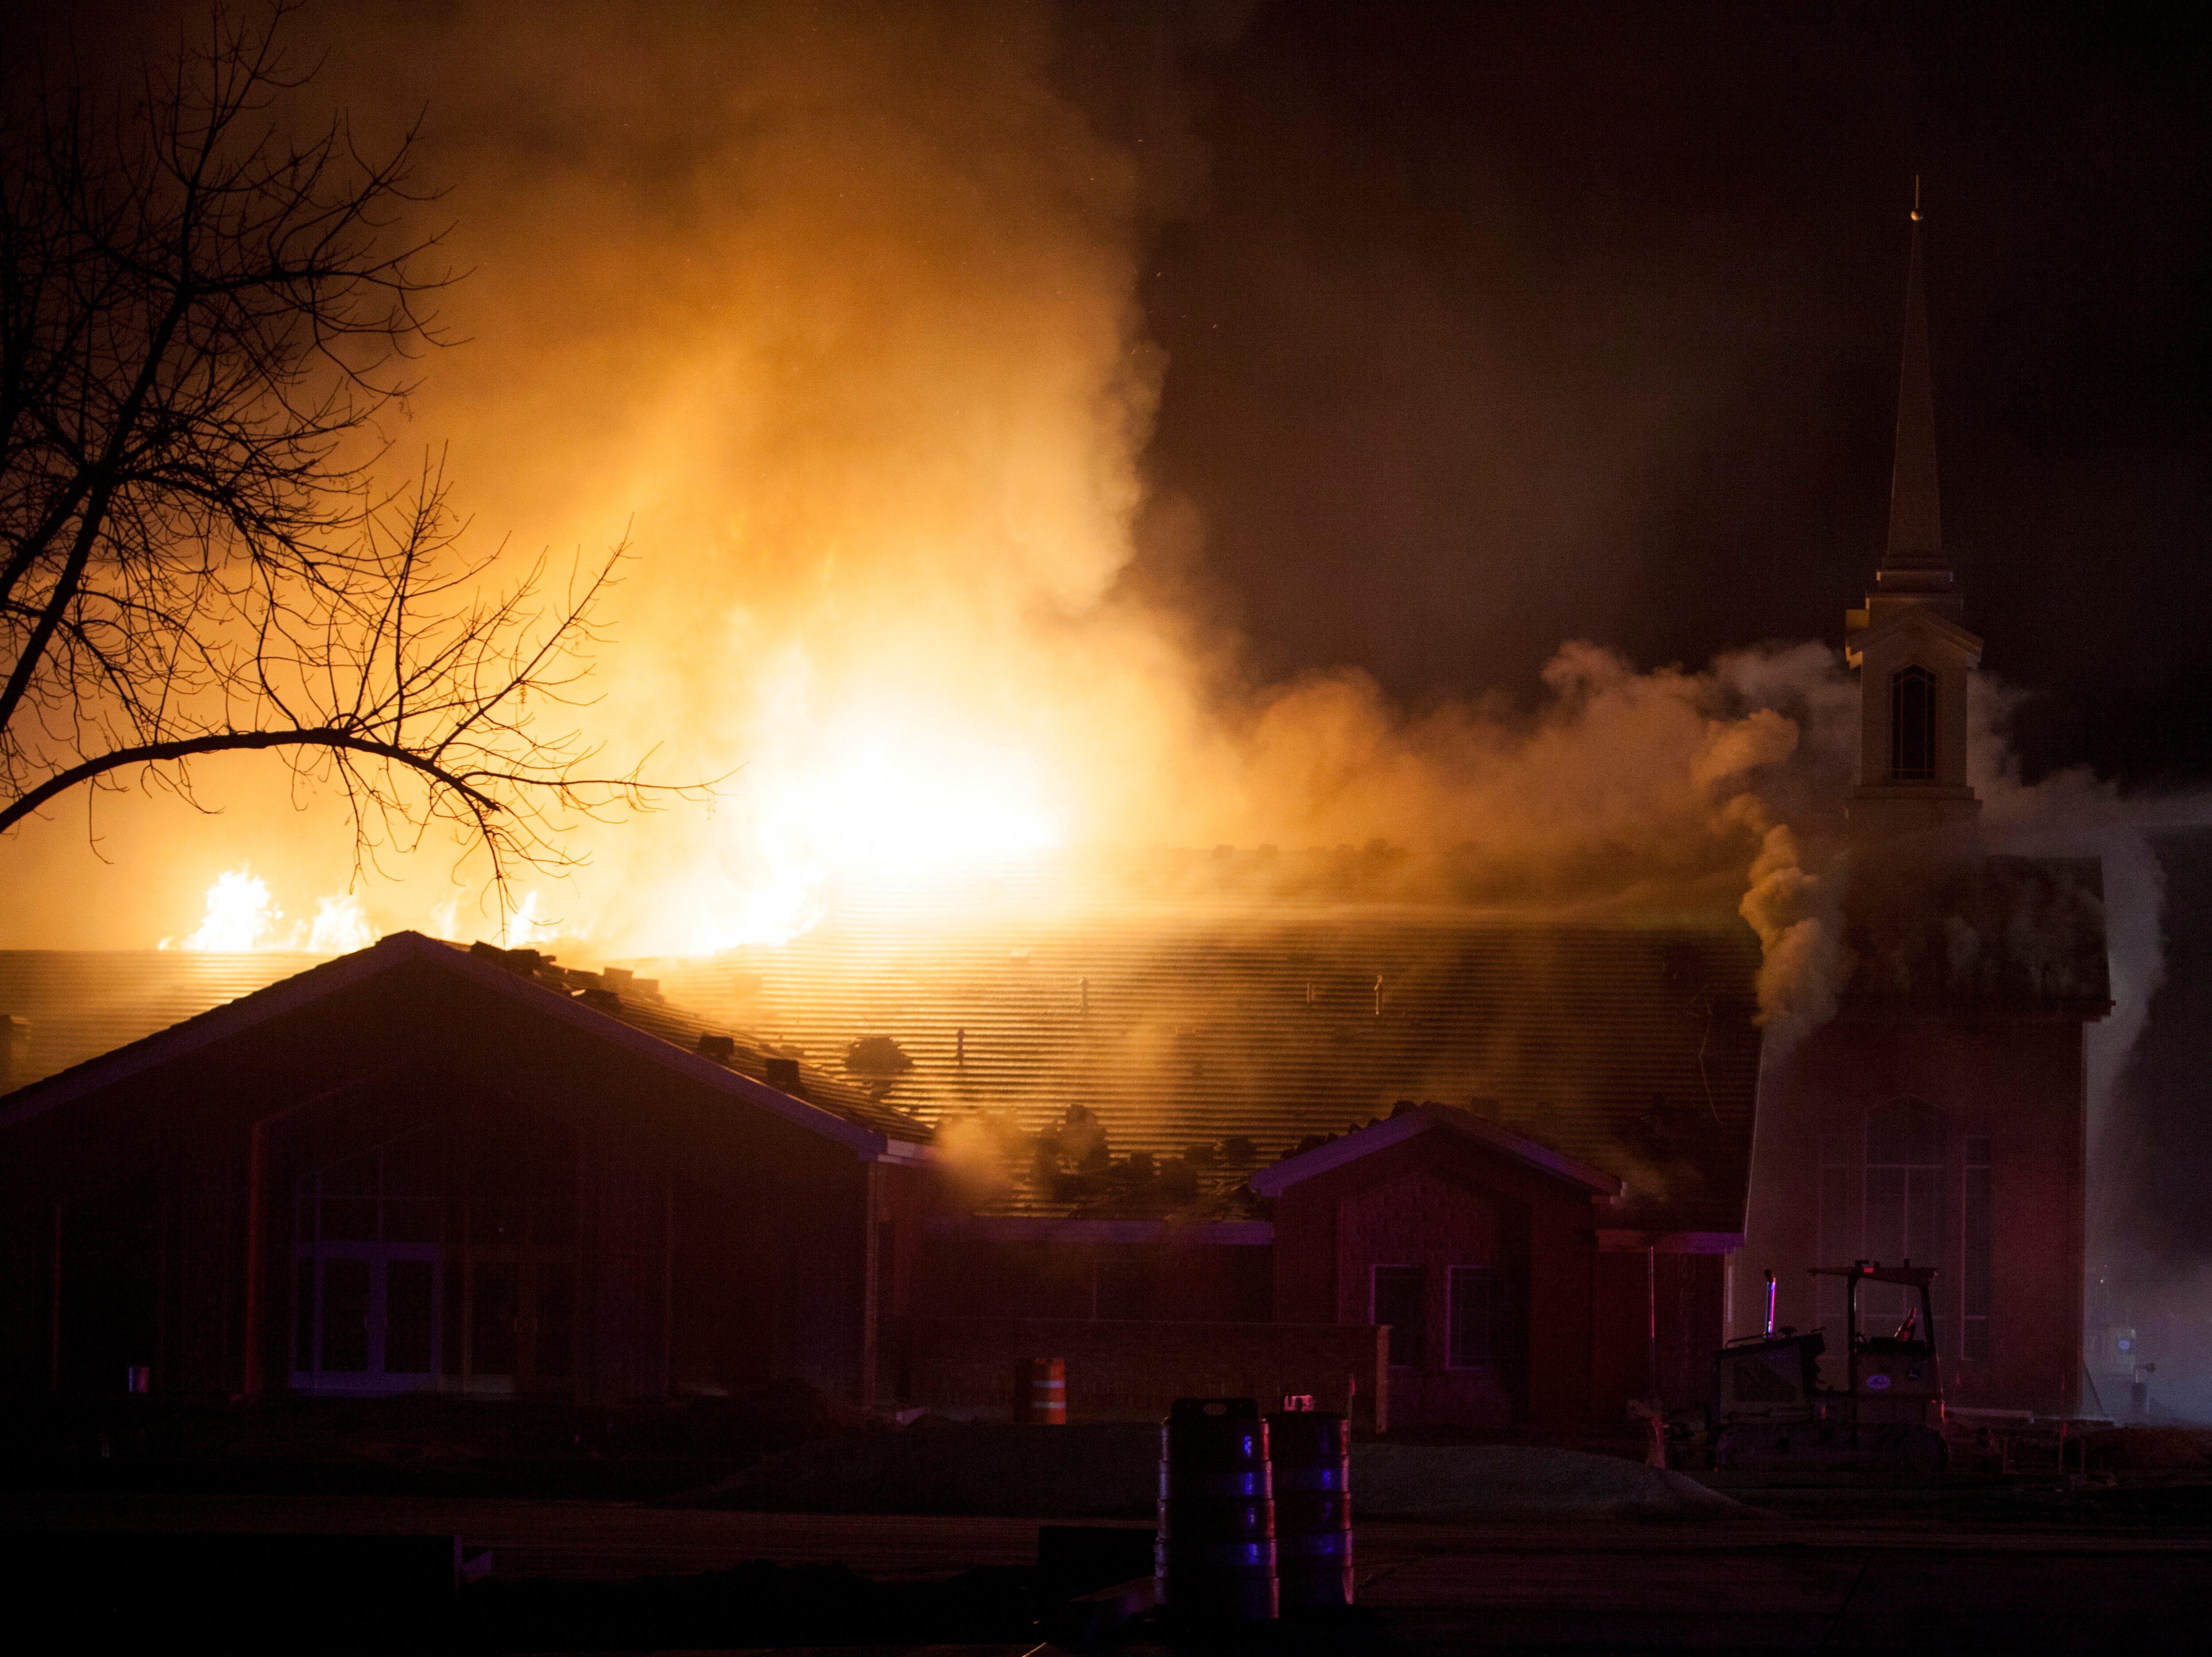 Fire departments from around the county work to control a fire at the recently-renovated LDS stake center Saturday, Jan. 26, 2019.